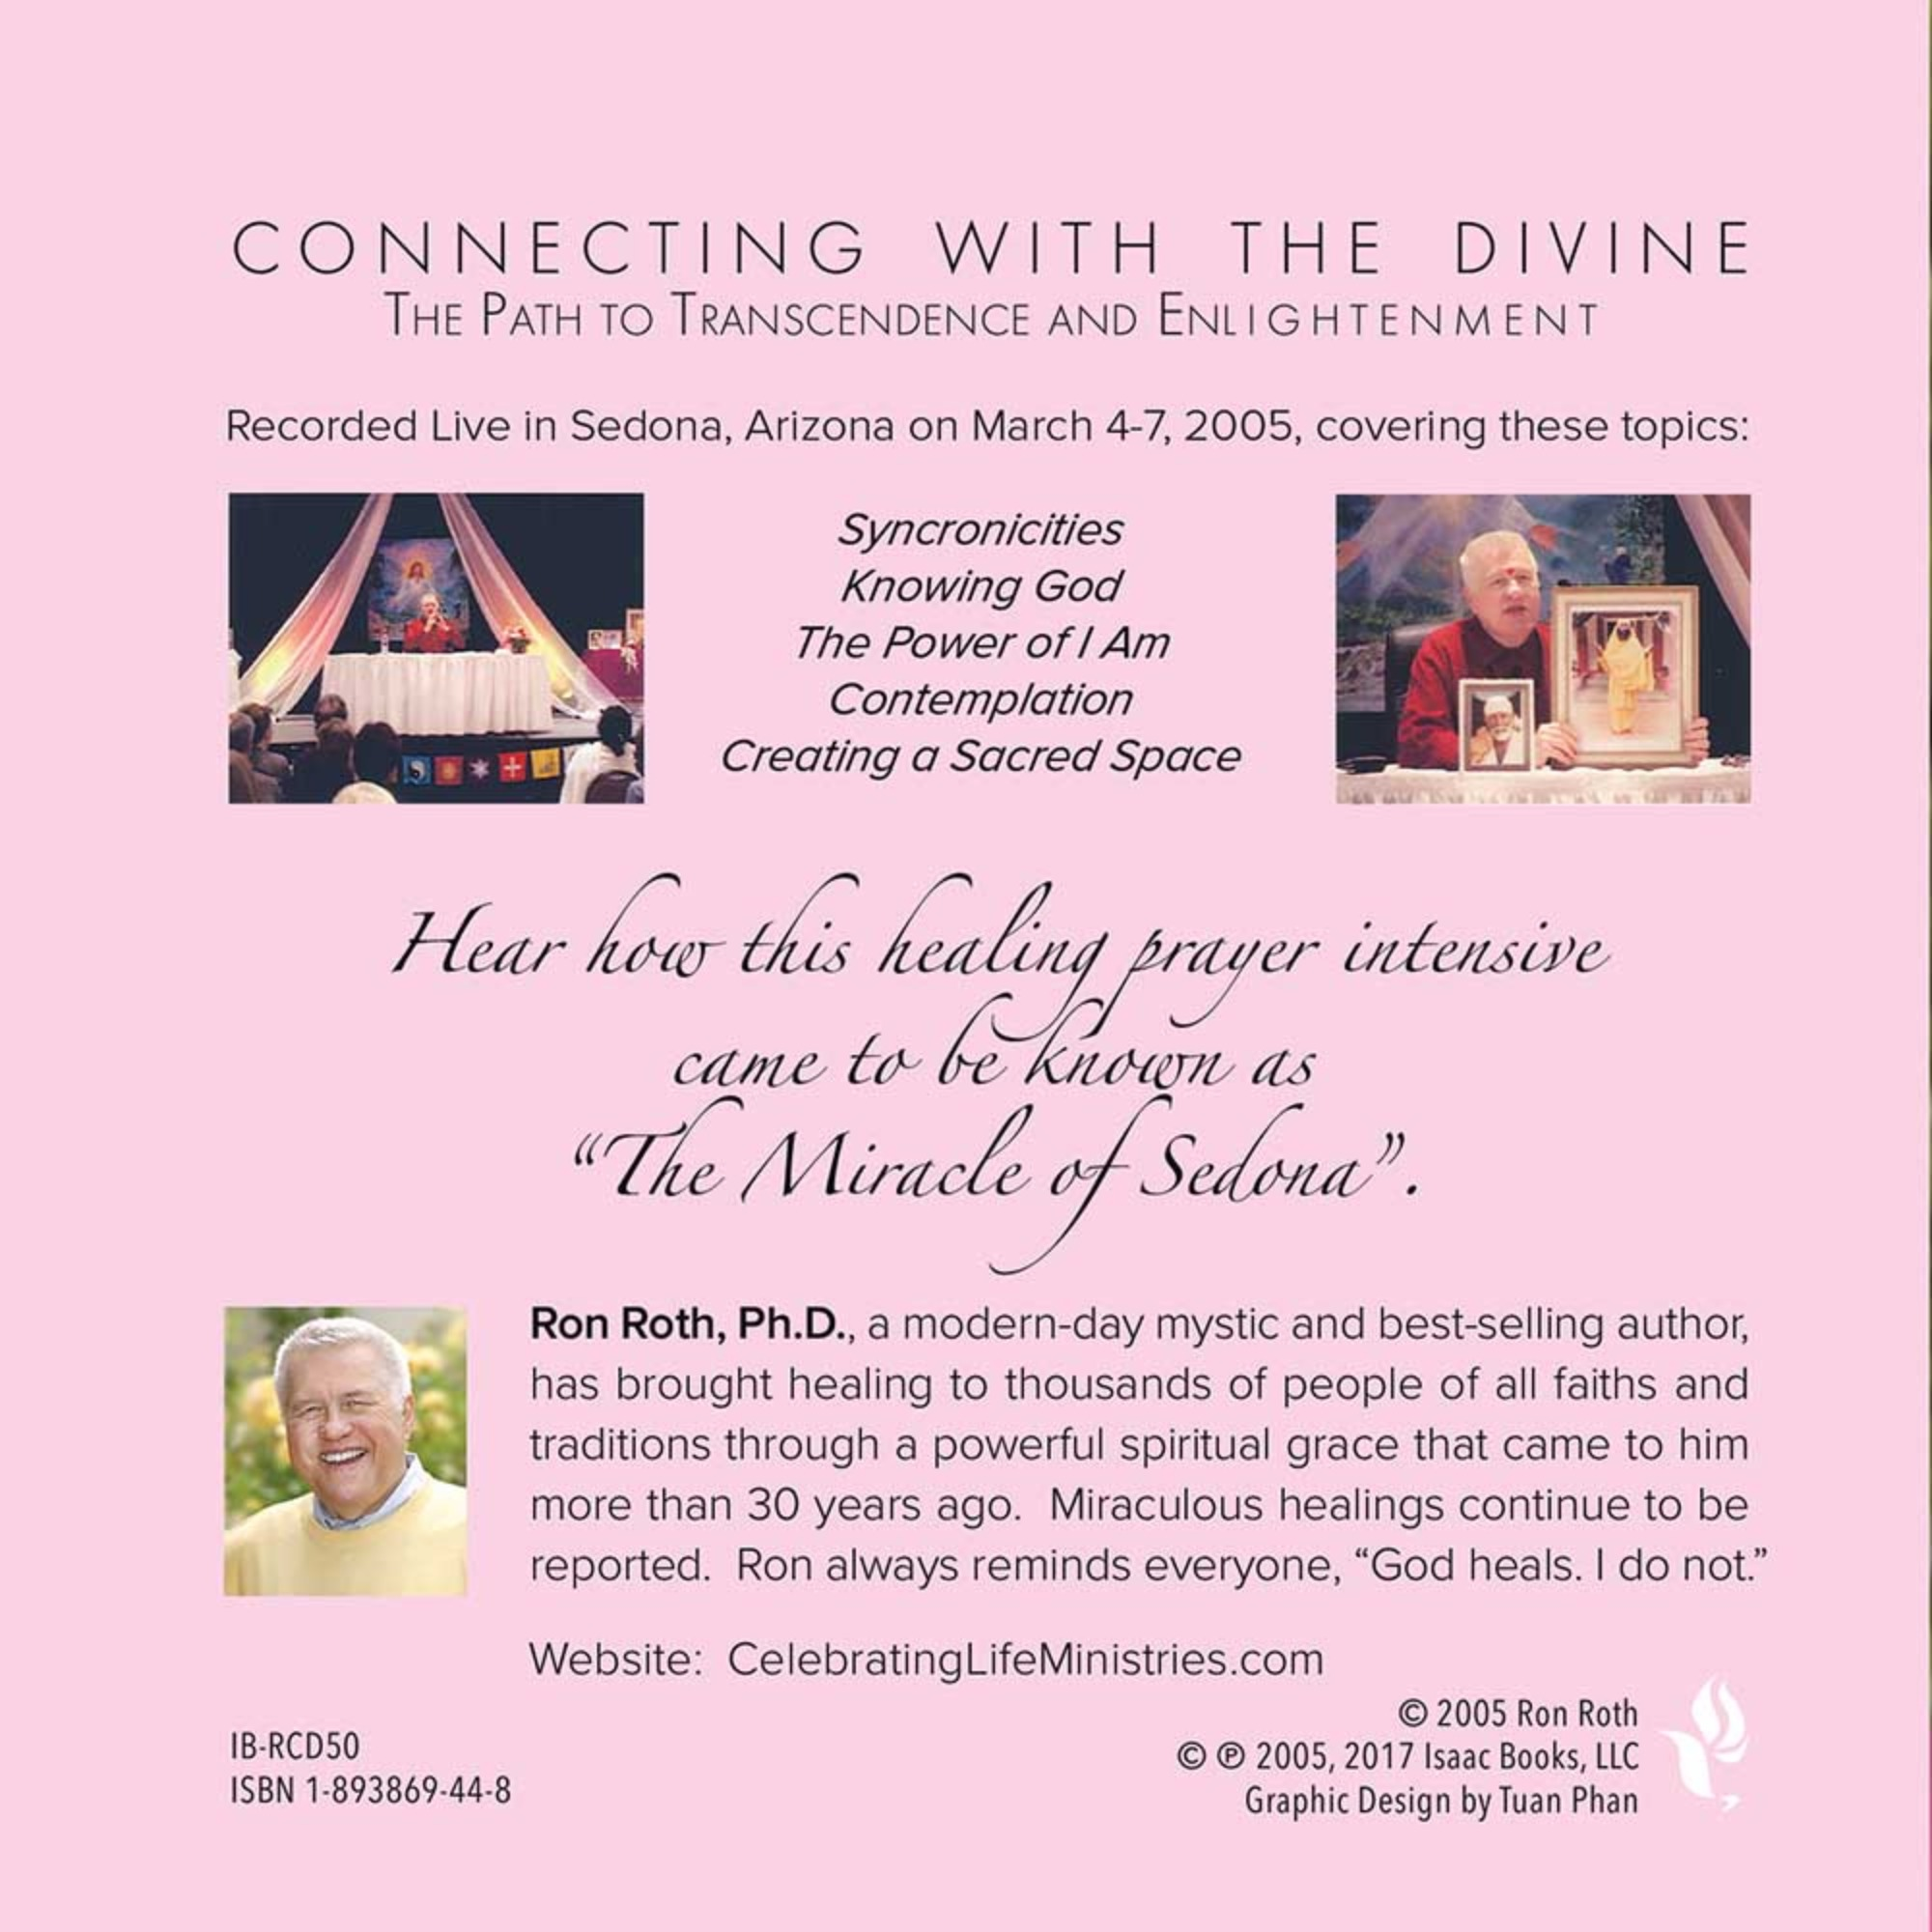 Connecting With The Divine: The Path of Transcendence and Enlightenment